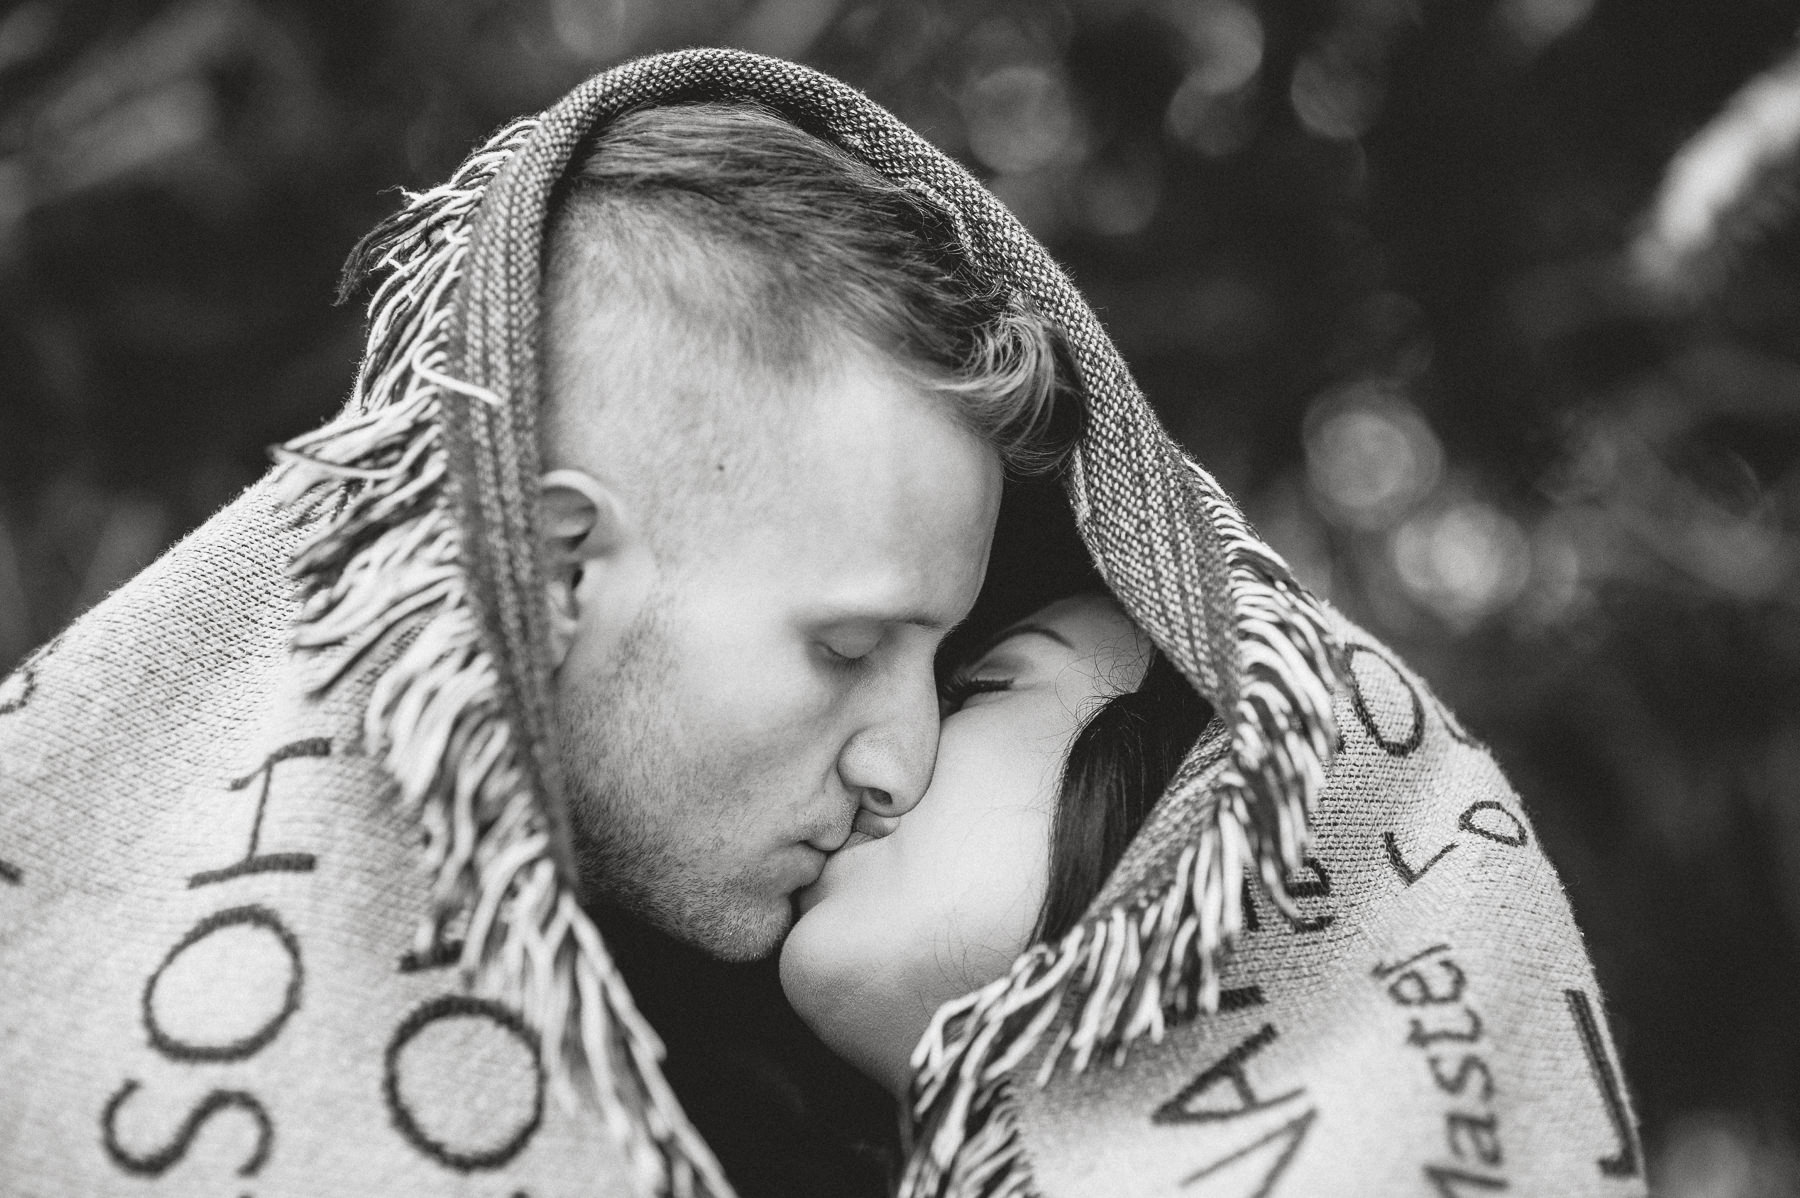 breighton-and-basette-photography-copyrighted-image-blog-abigail-and-ryne-engagement-038.jpg